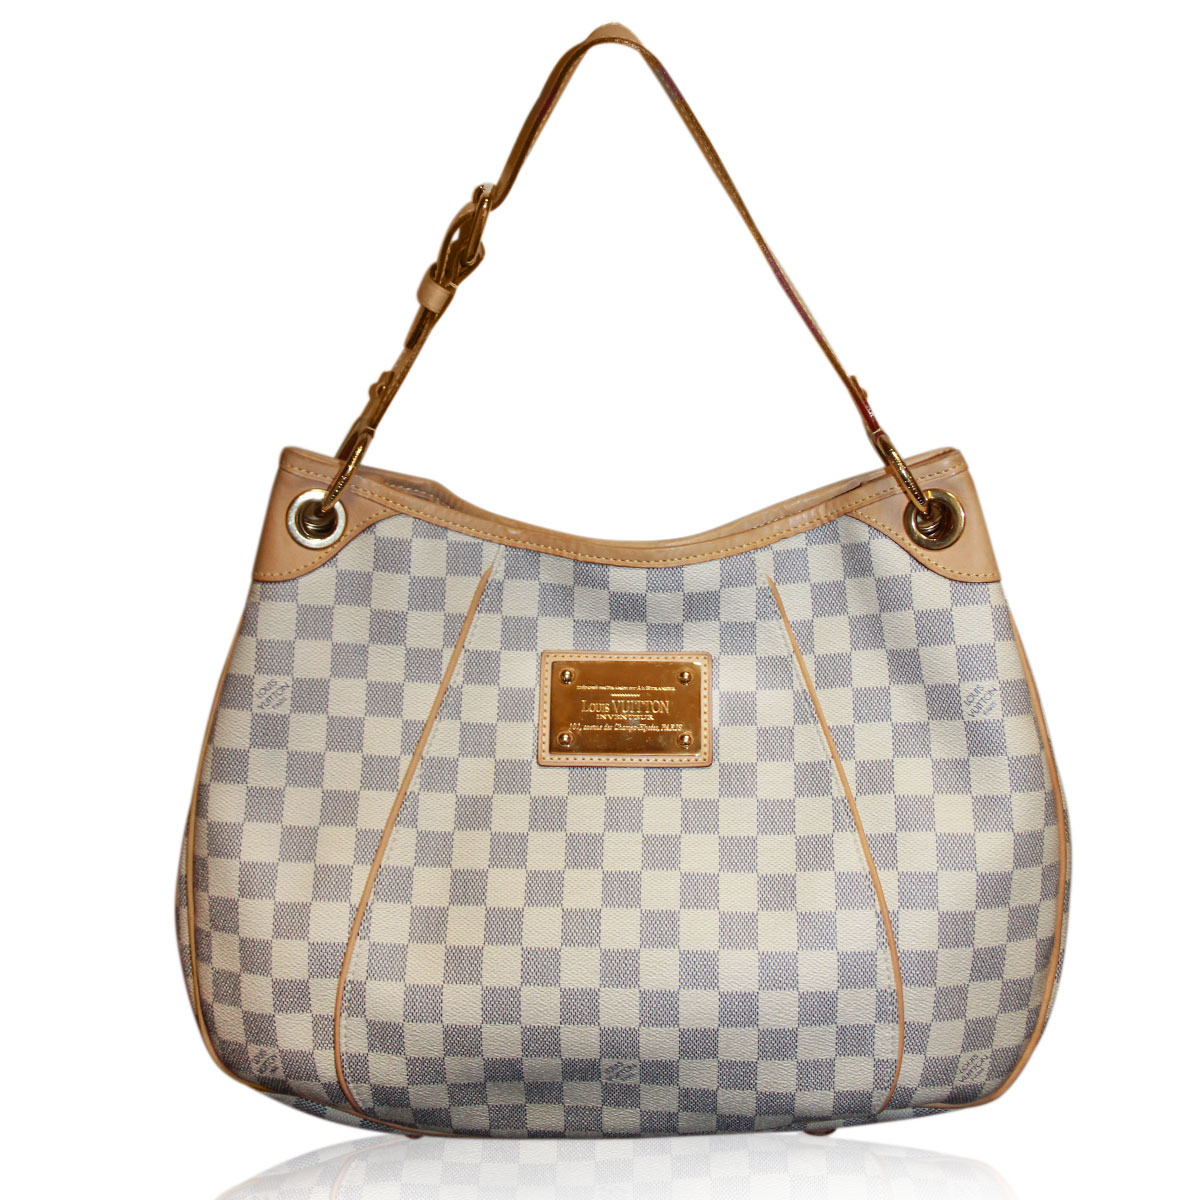 Louis Vuitton Damier Azur Galliera PM Shoulder Bag, Boca Raton